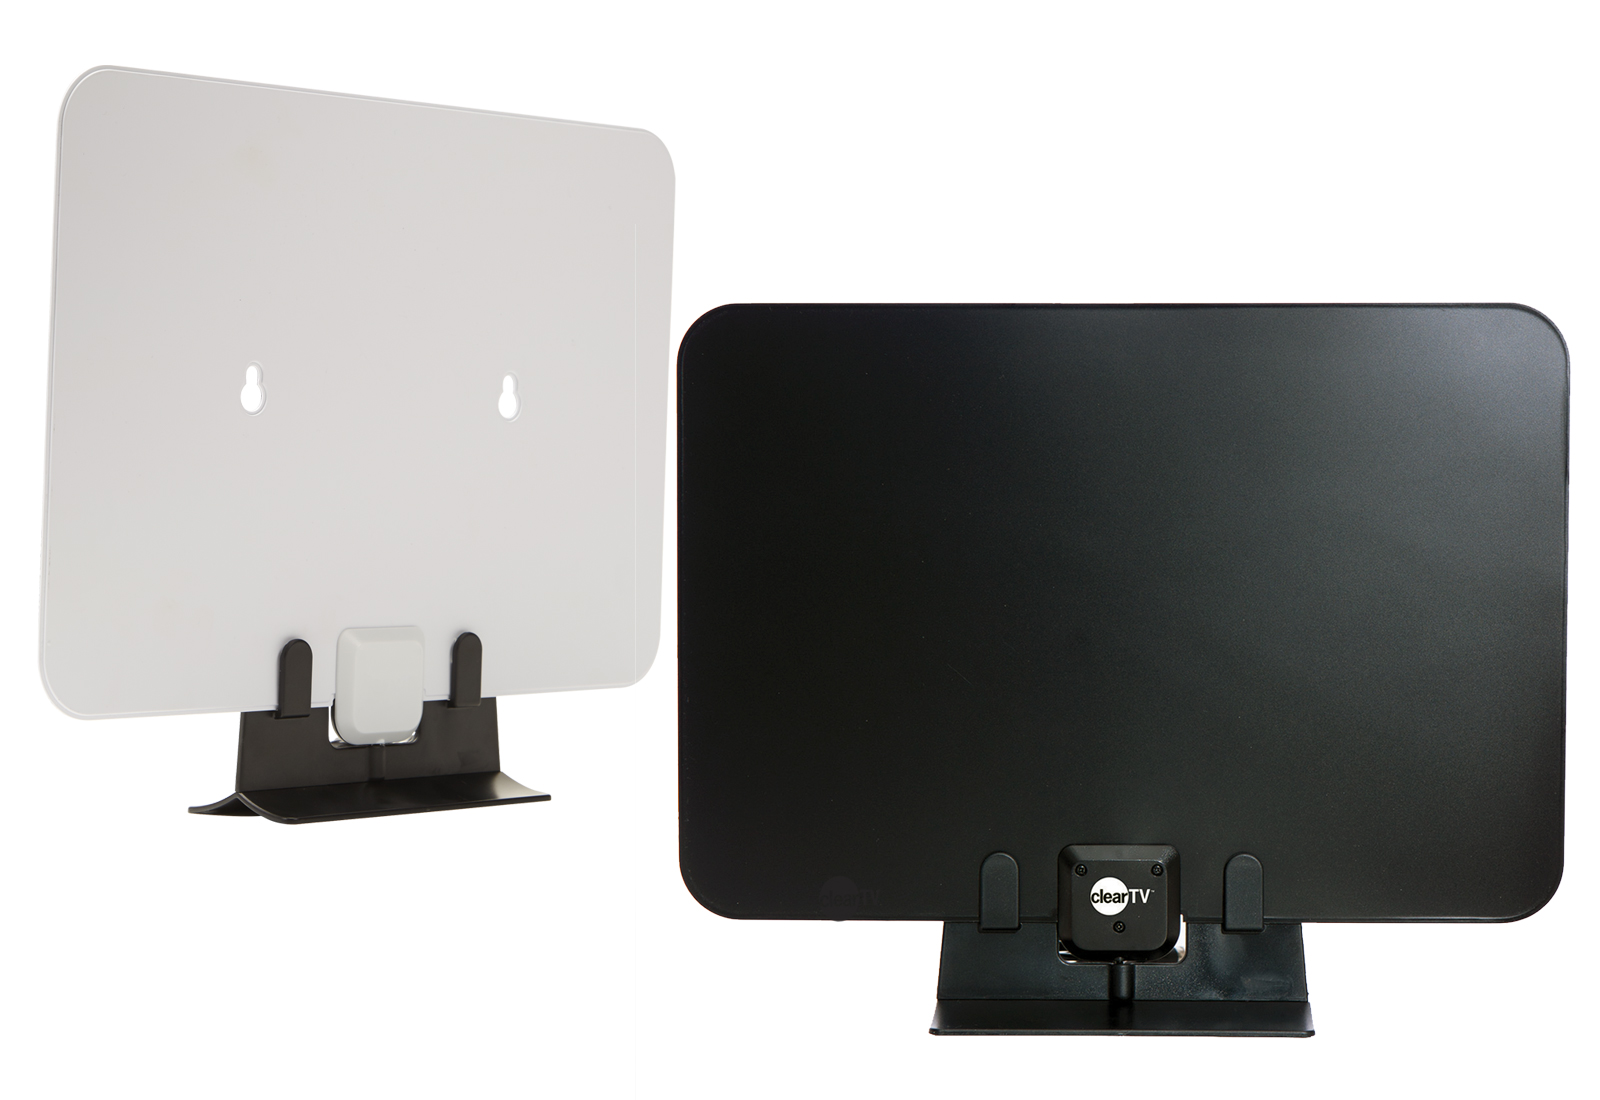 Clear TV Plus Product Image